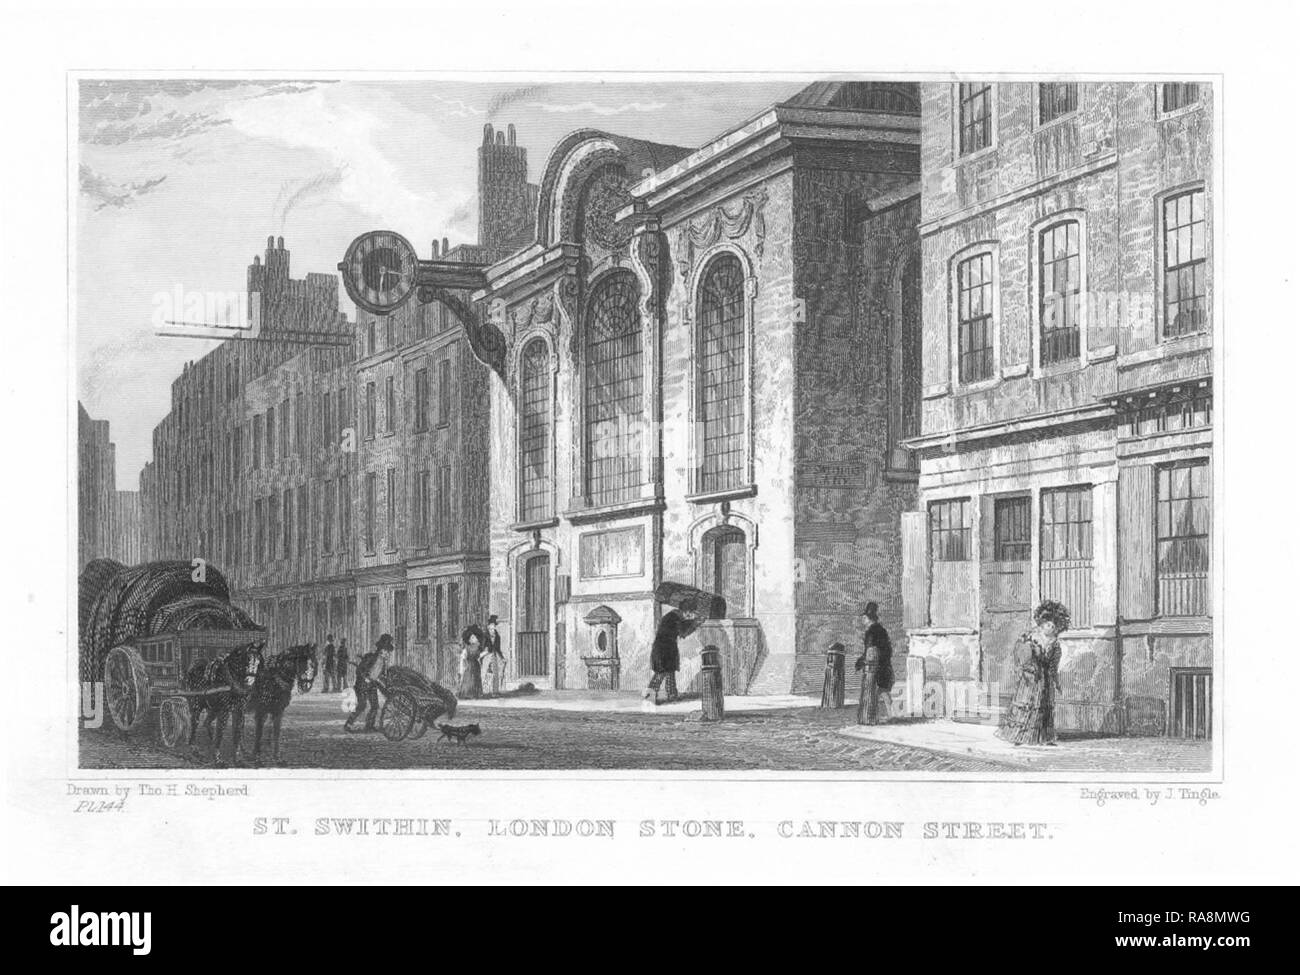 The south front of Wren's church of St Swithin London Stone, in an engraving after T. H. Shepherd, 1831. Stock Photo